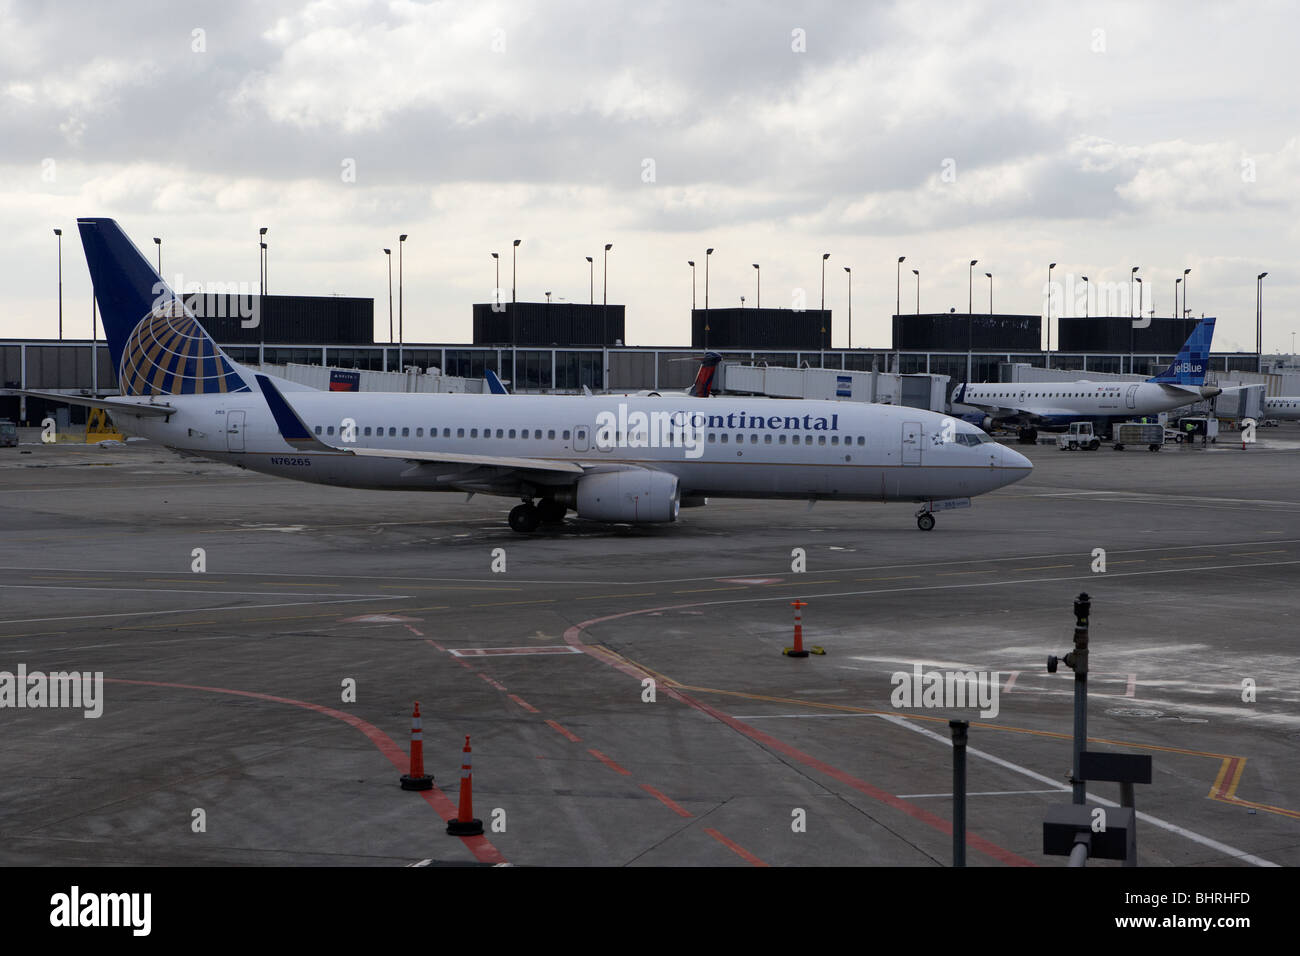 continental airlines N76265 boeing 737-824 airliner taxing in terminal on a cold winter day at o'hare international - Stock Image